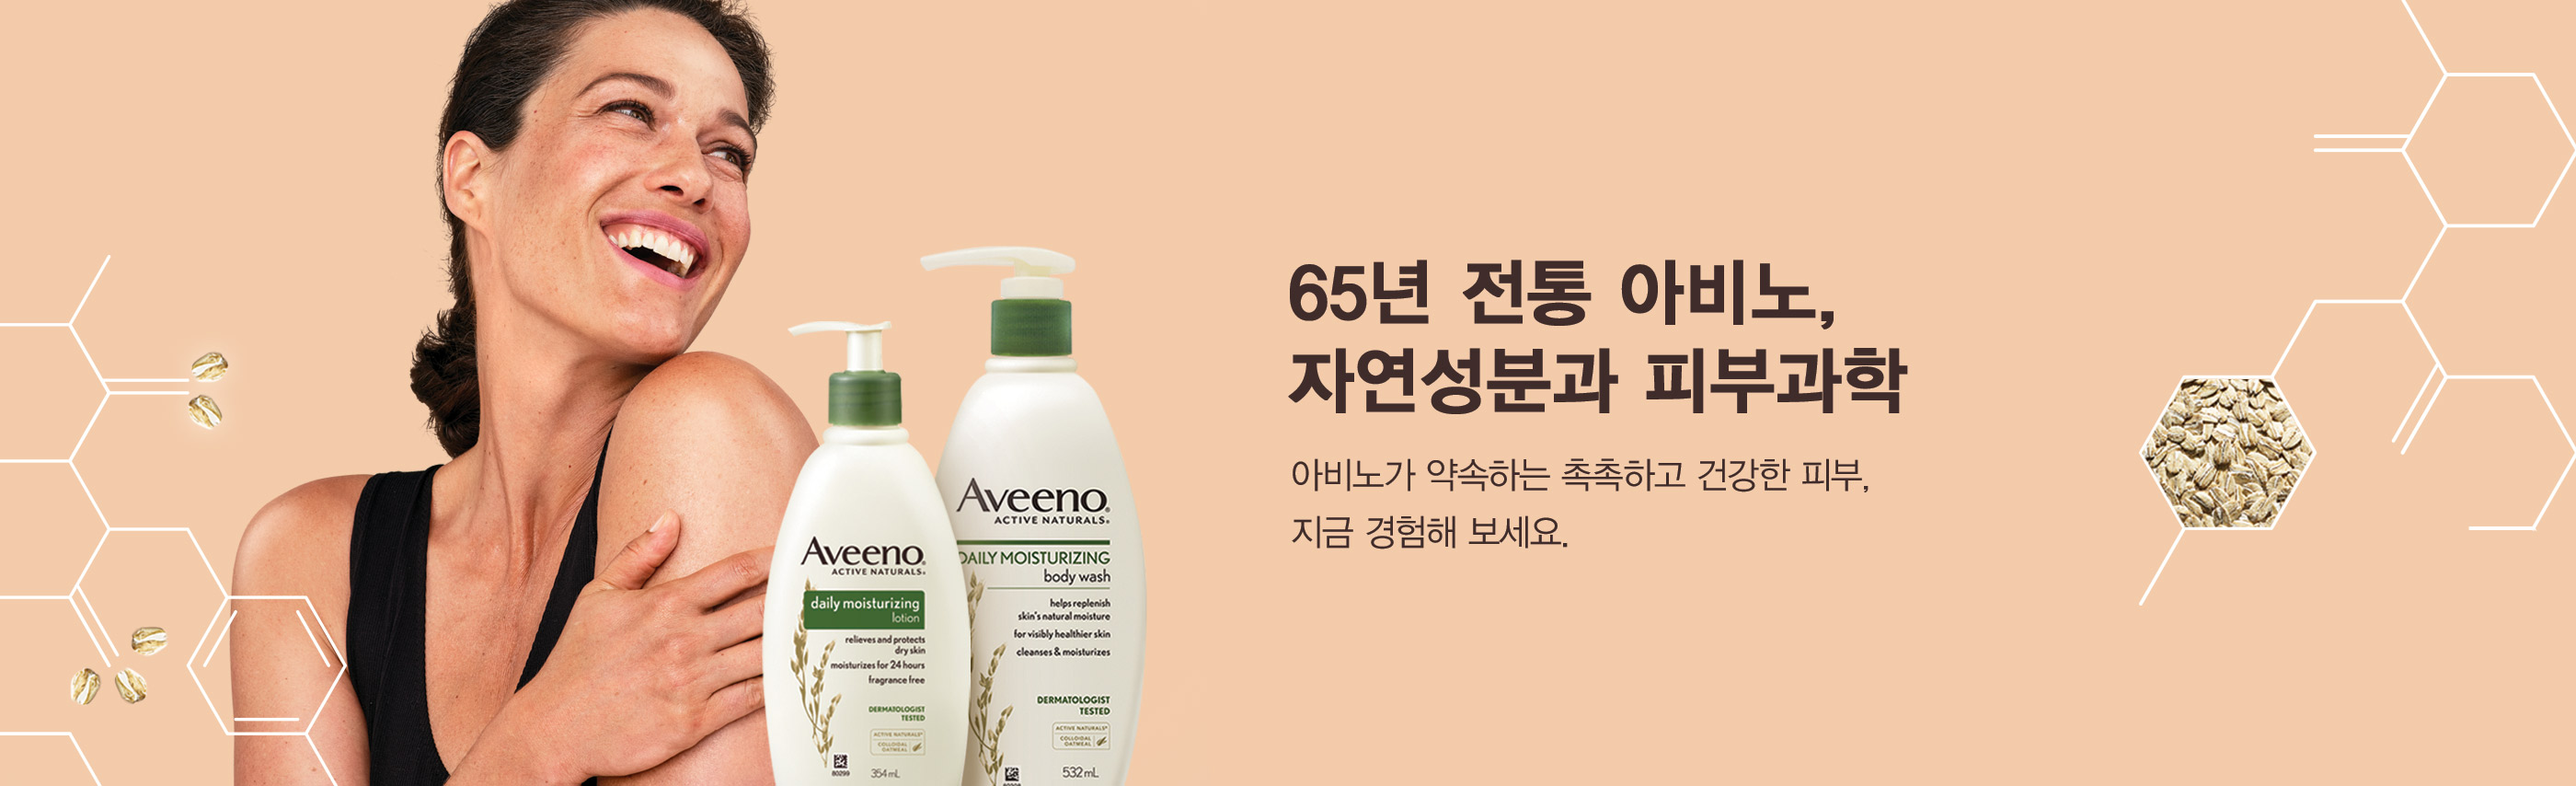 about-aveeno-banner.jpg